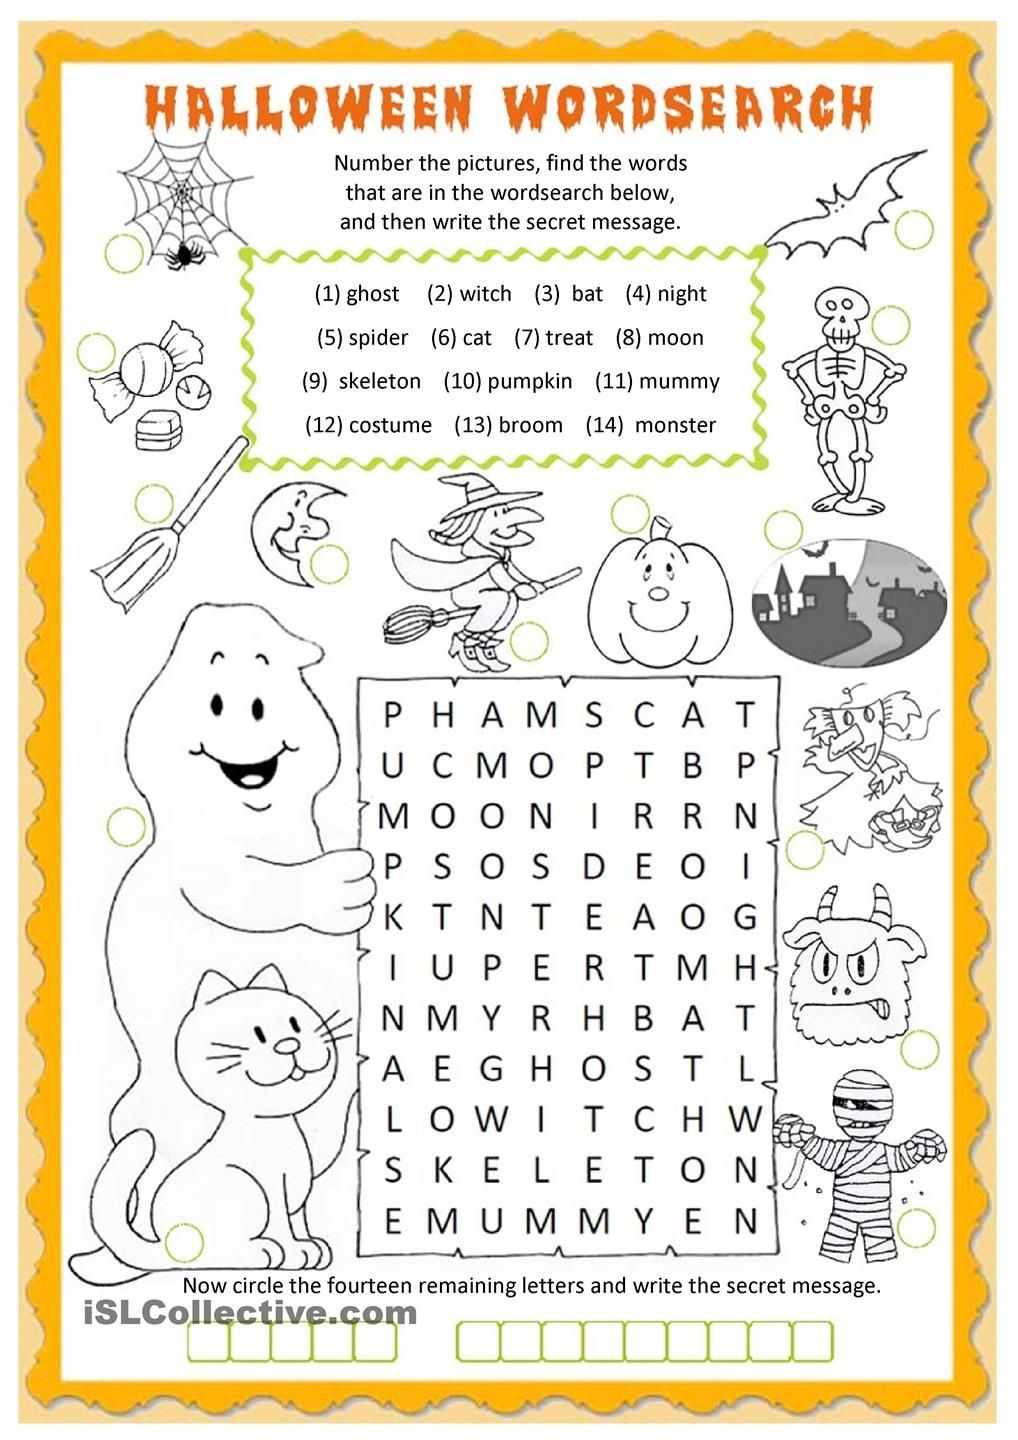 Halloween Wordsearch Worksheet - Free Esl Printable Worksheets Made - Free Printable French Halloween Worksheets